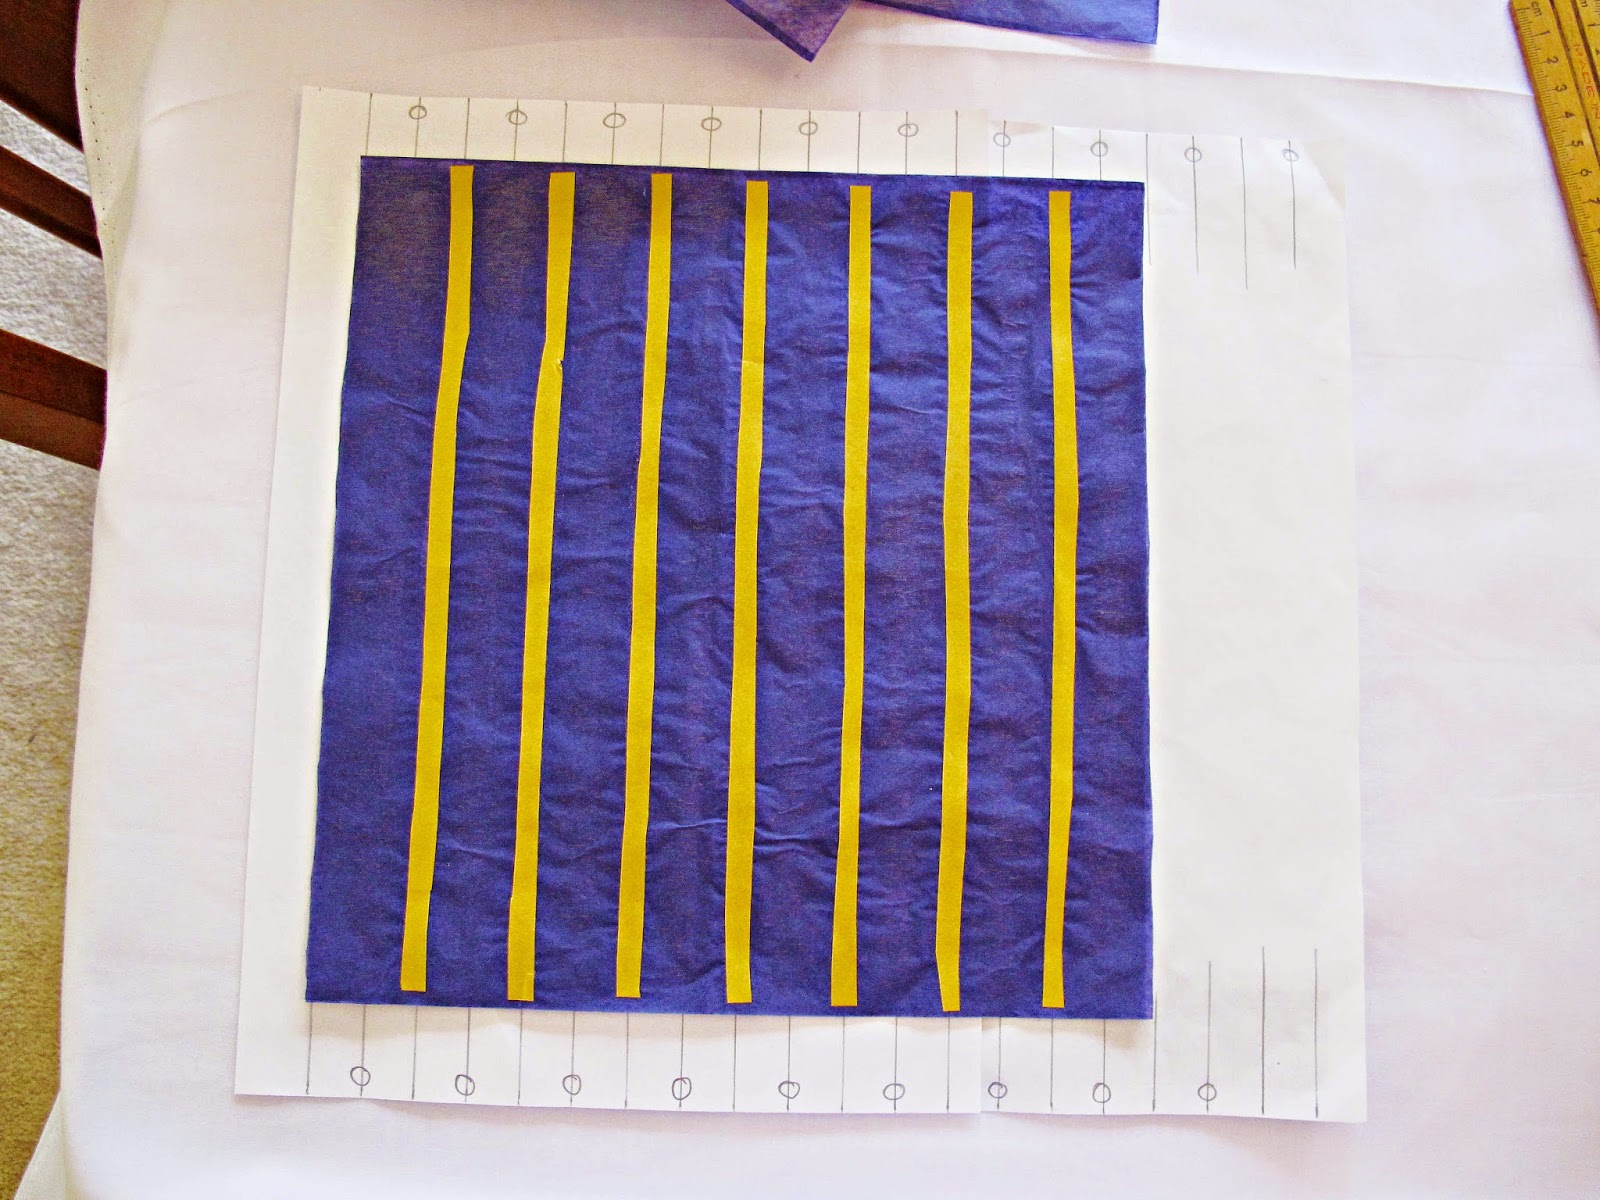 image diy tutorial honeycomb paper place tape or glue on the alternate lines now